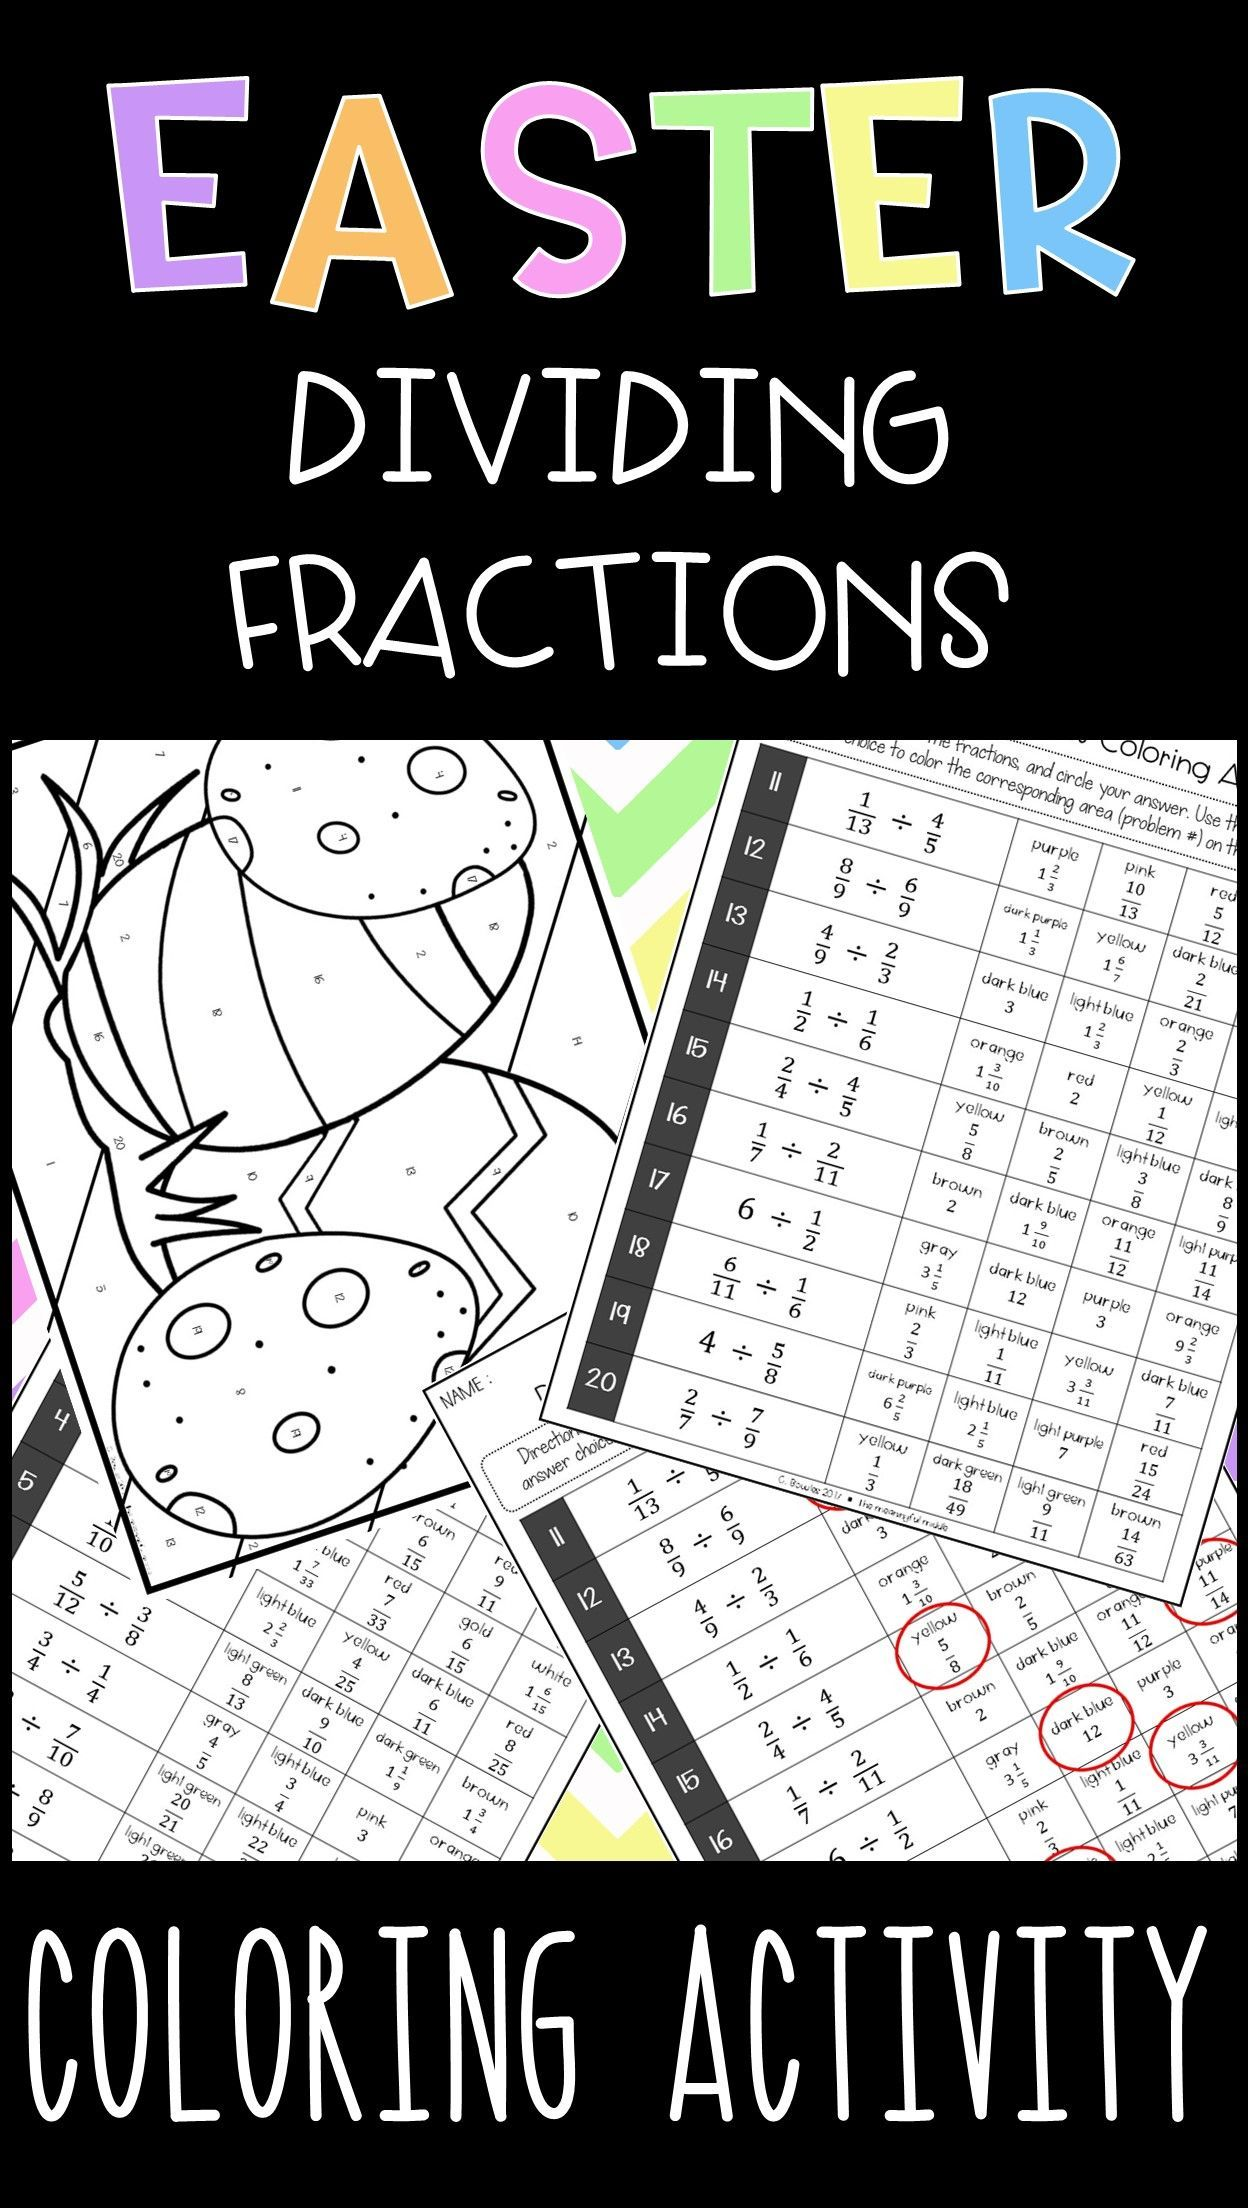 Easter Dividing Fractions Coloring Activity